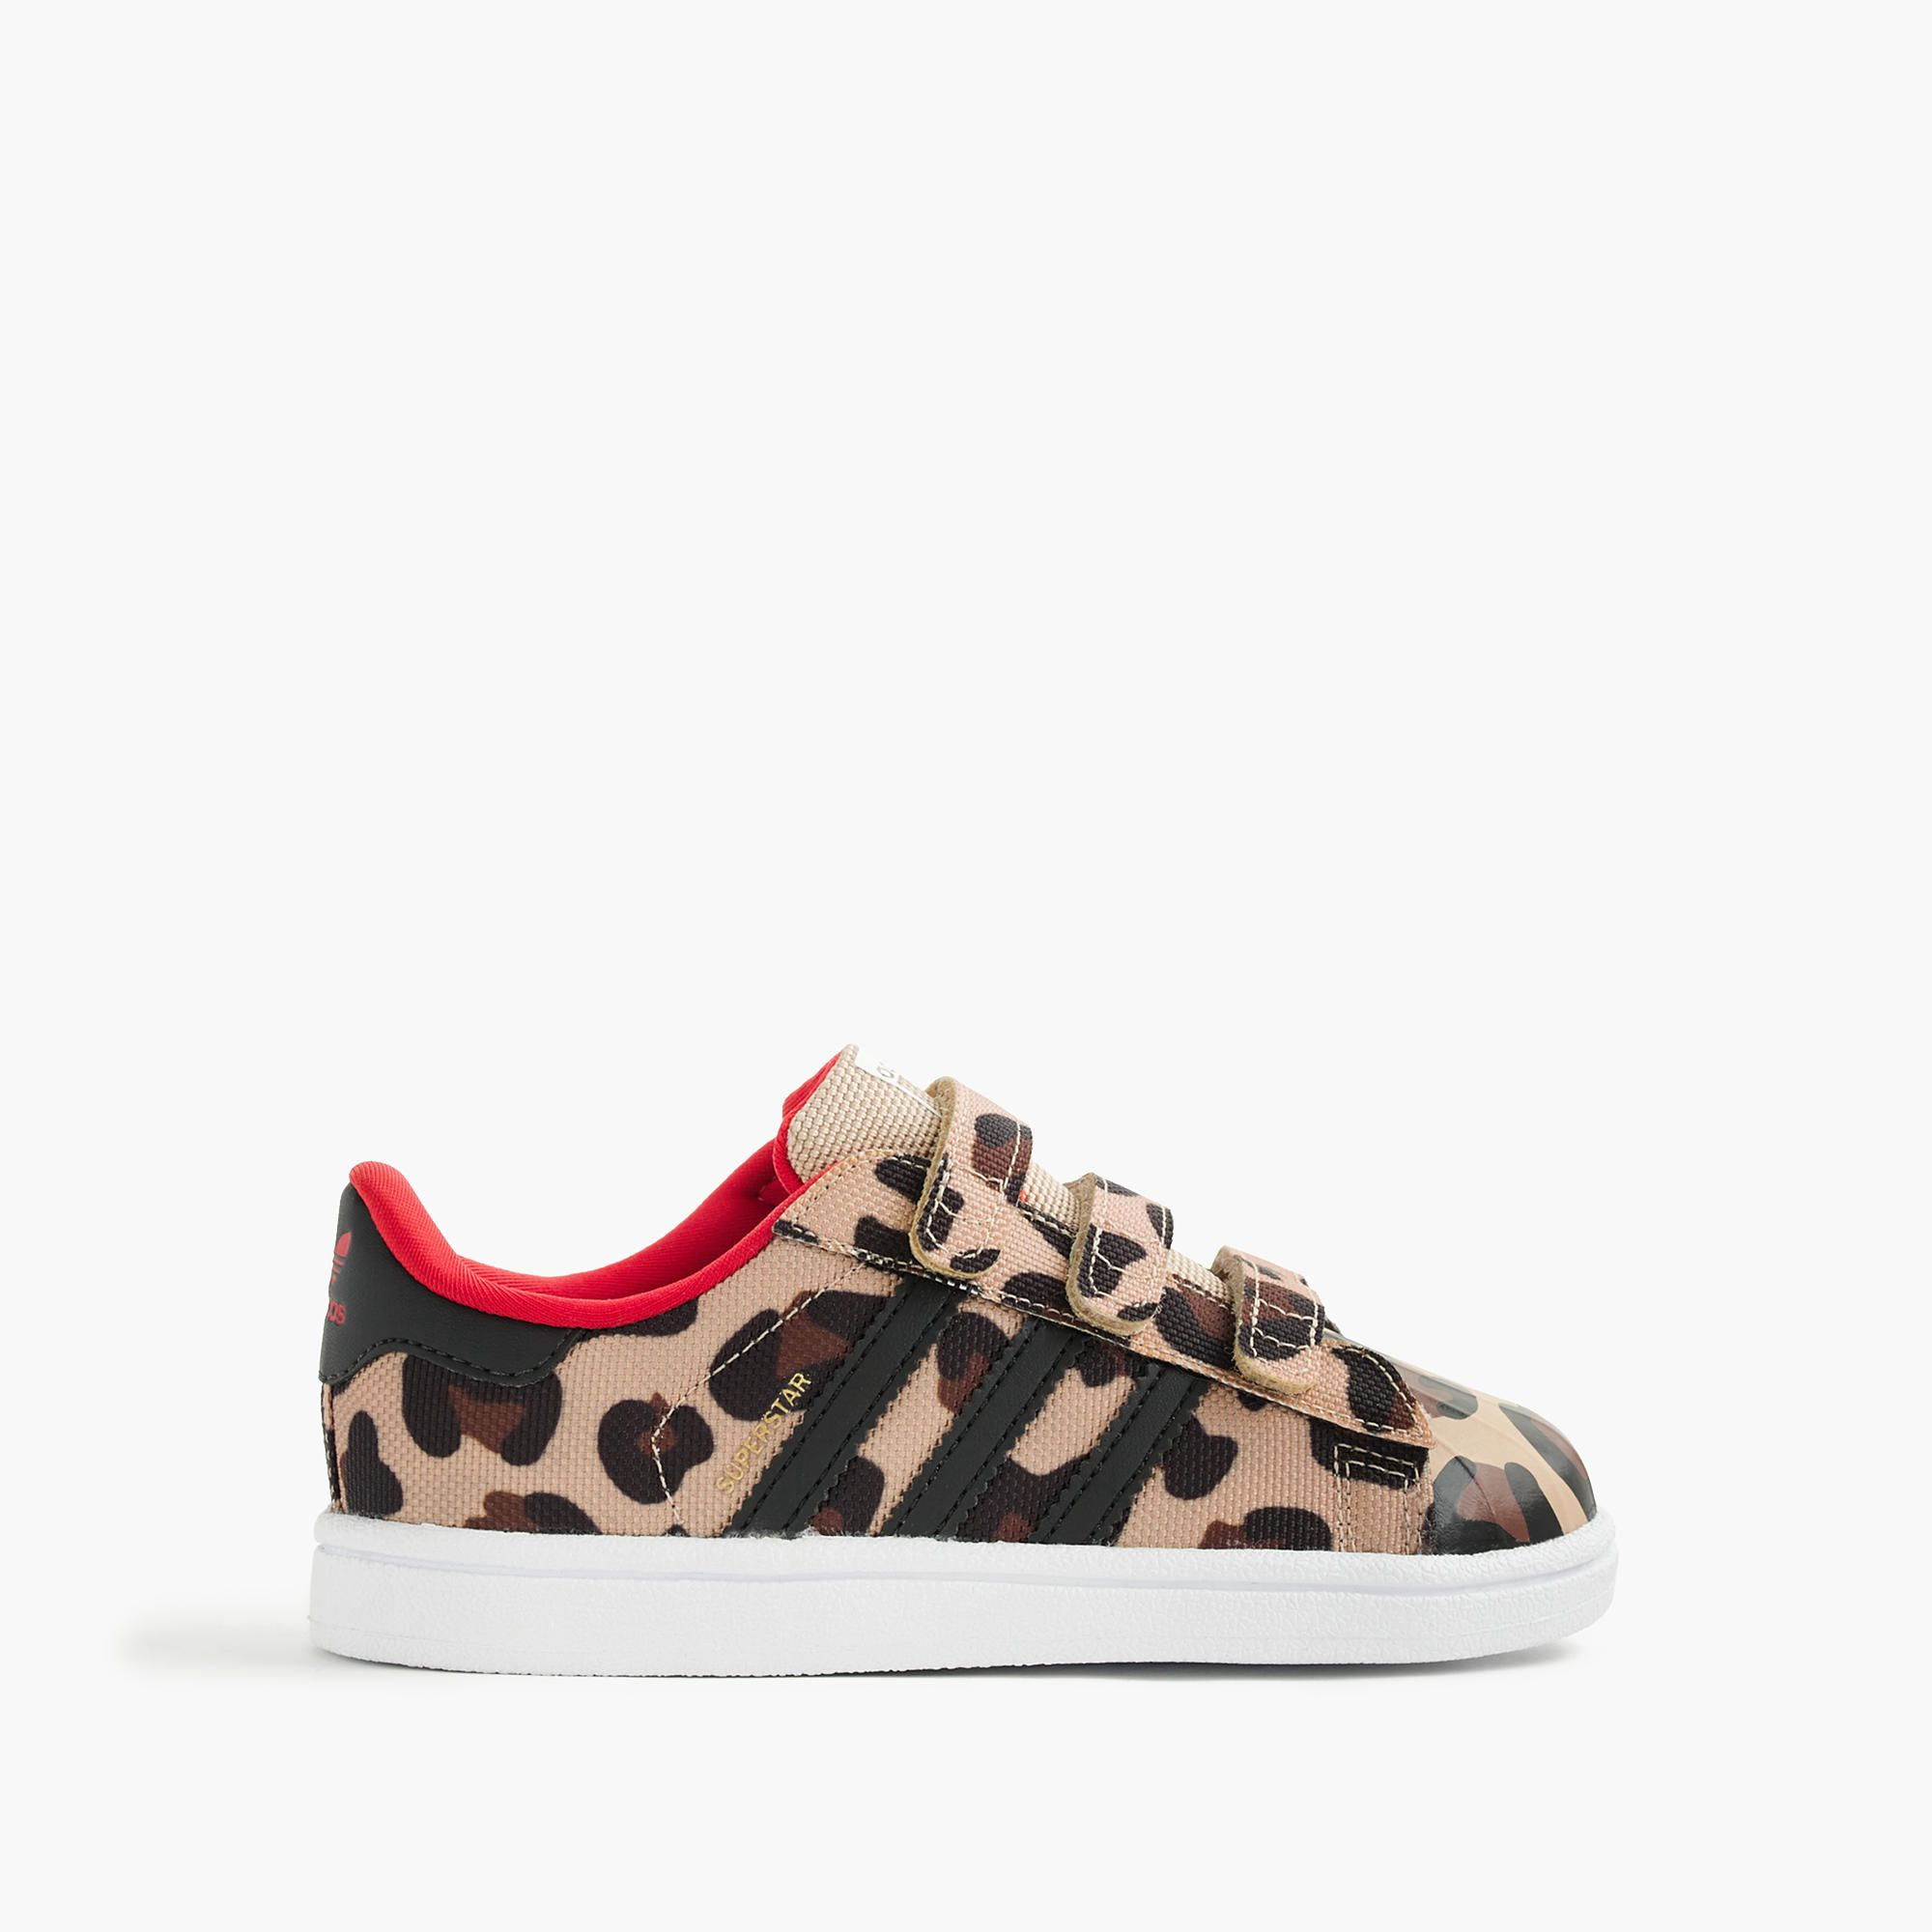 adidas superstar shoes on sale girls adidas gazelle shoes womens